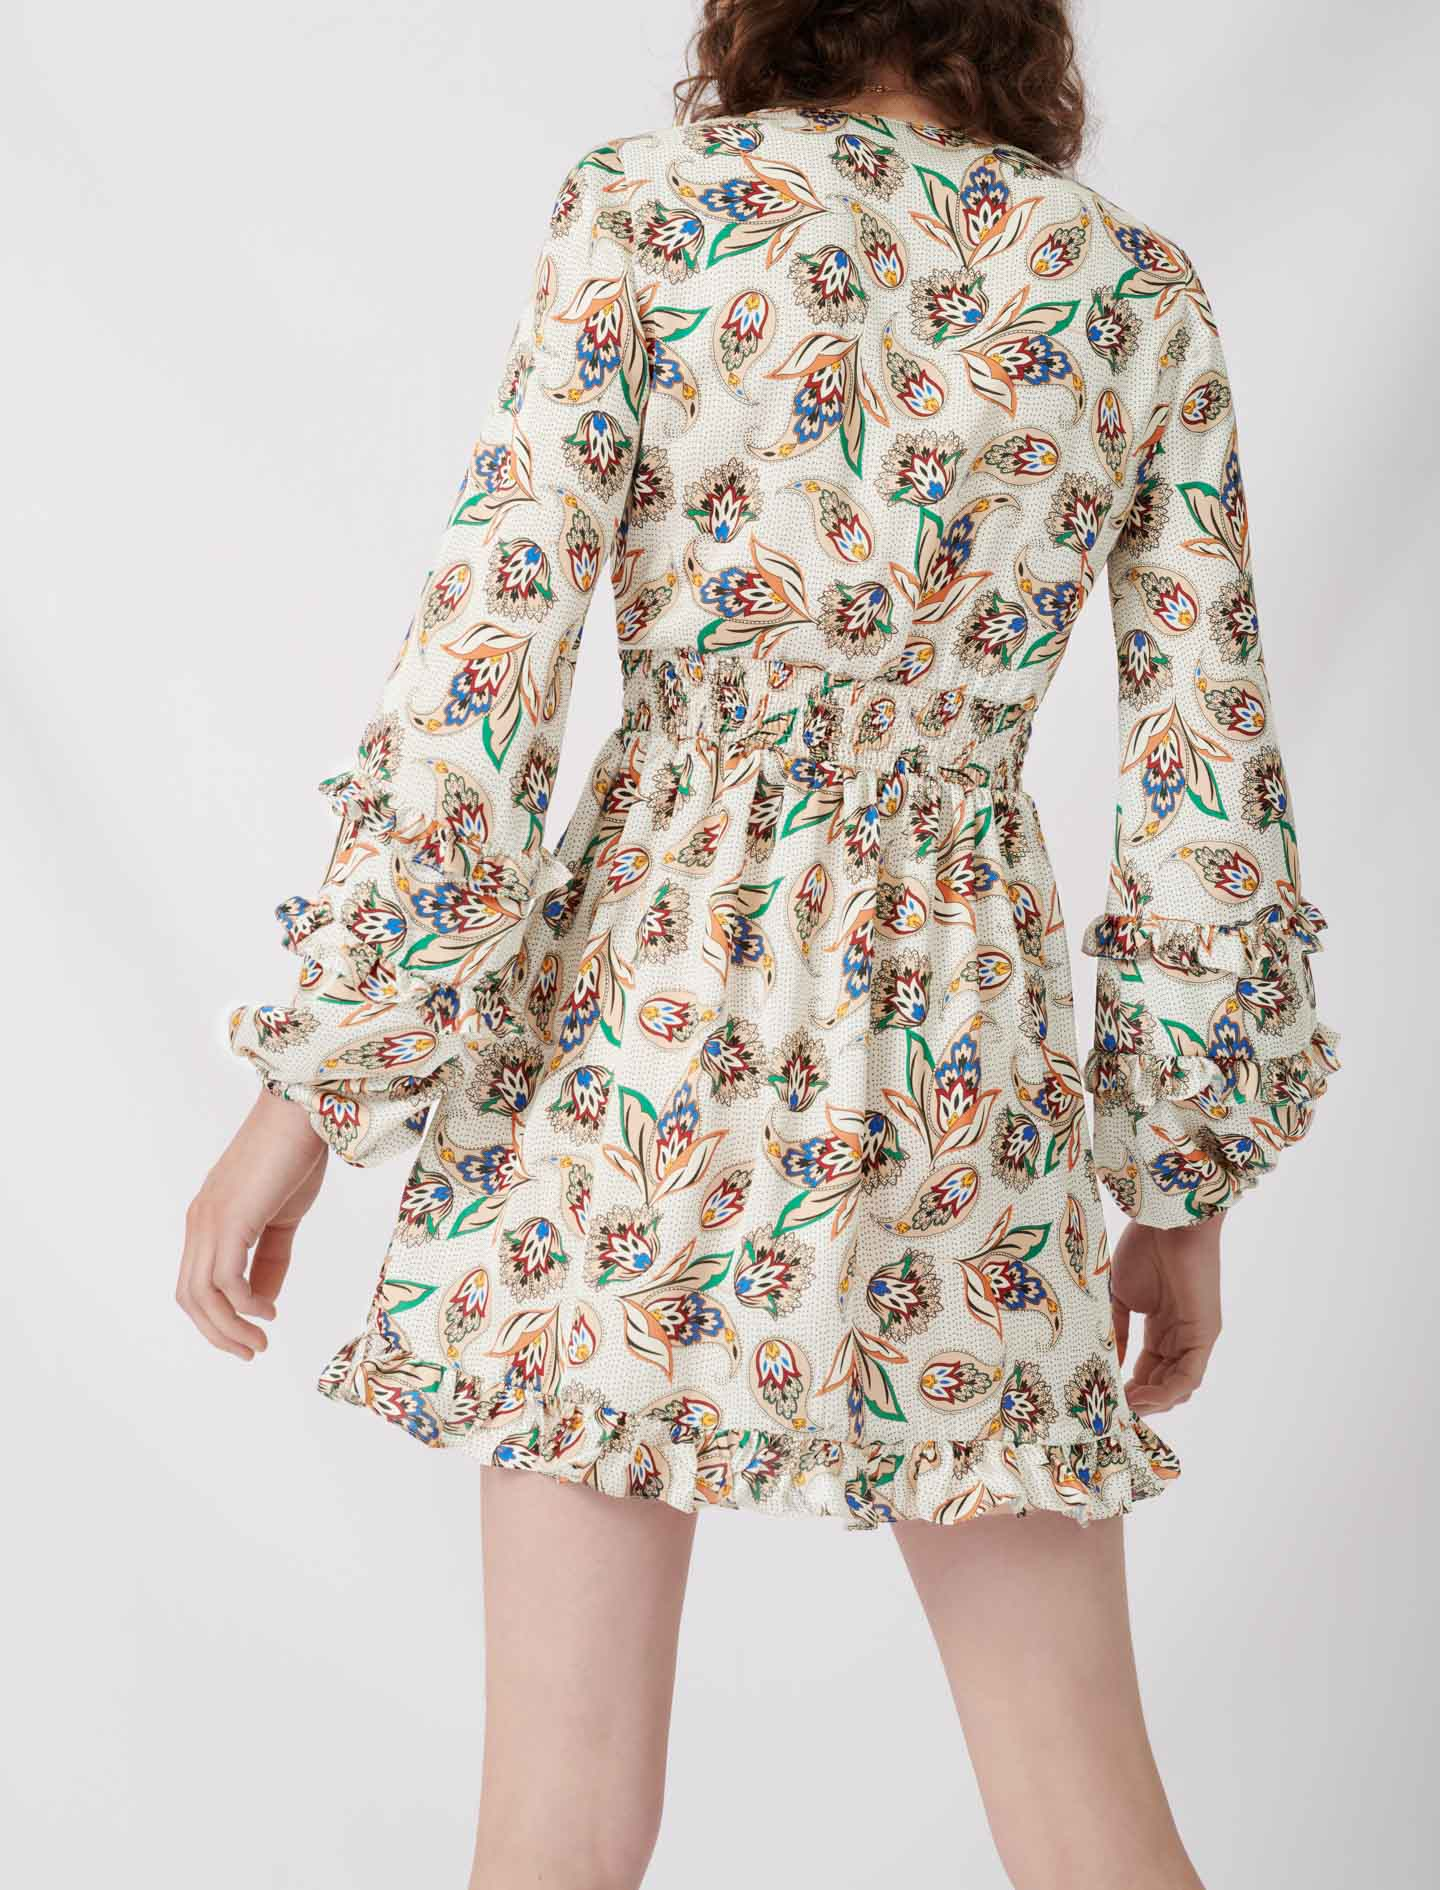 Printed silk dress with ruffles - Multiclr